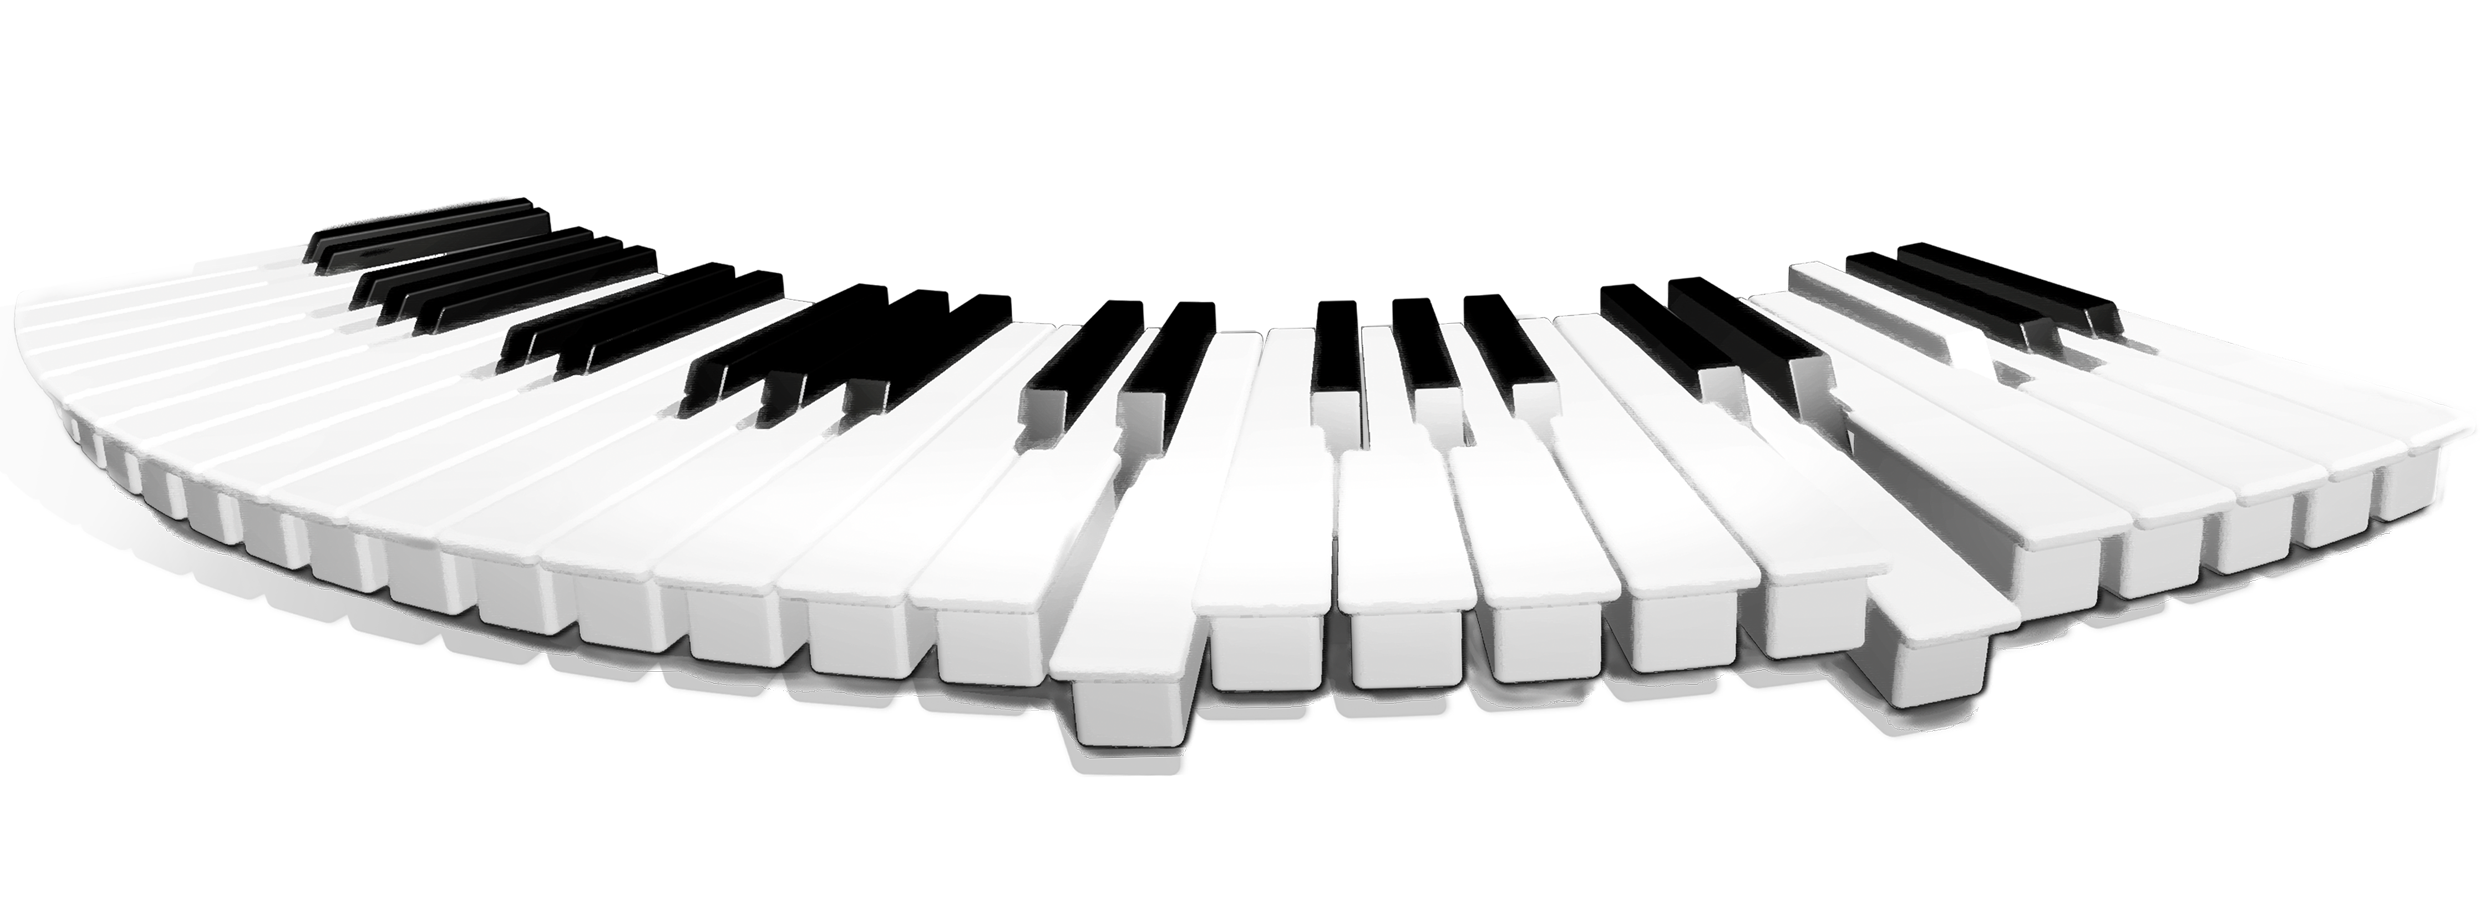 Piano clipart keyboard casio. Music png images adsleaf